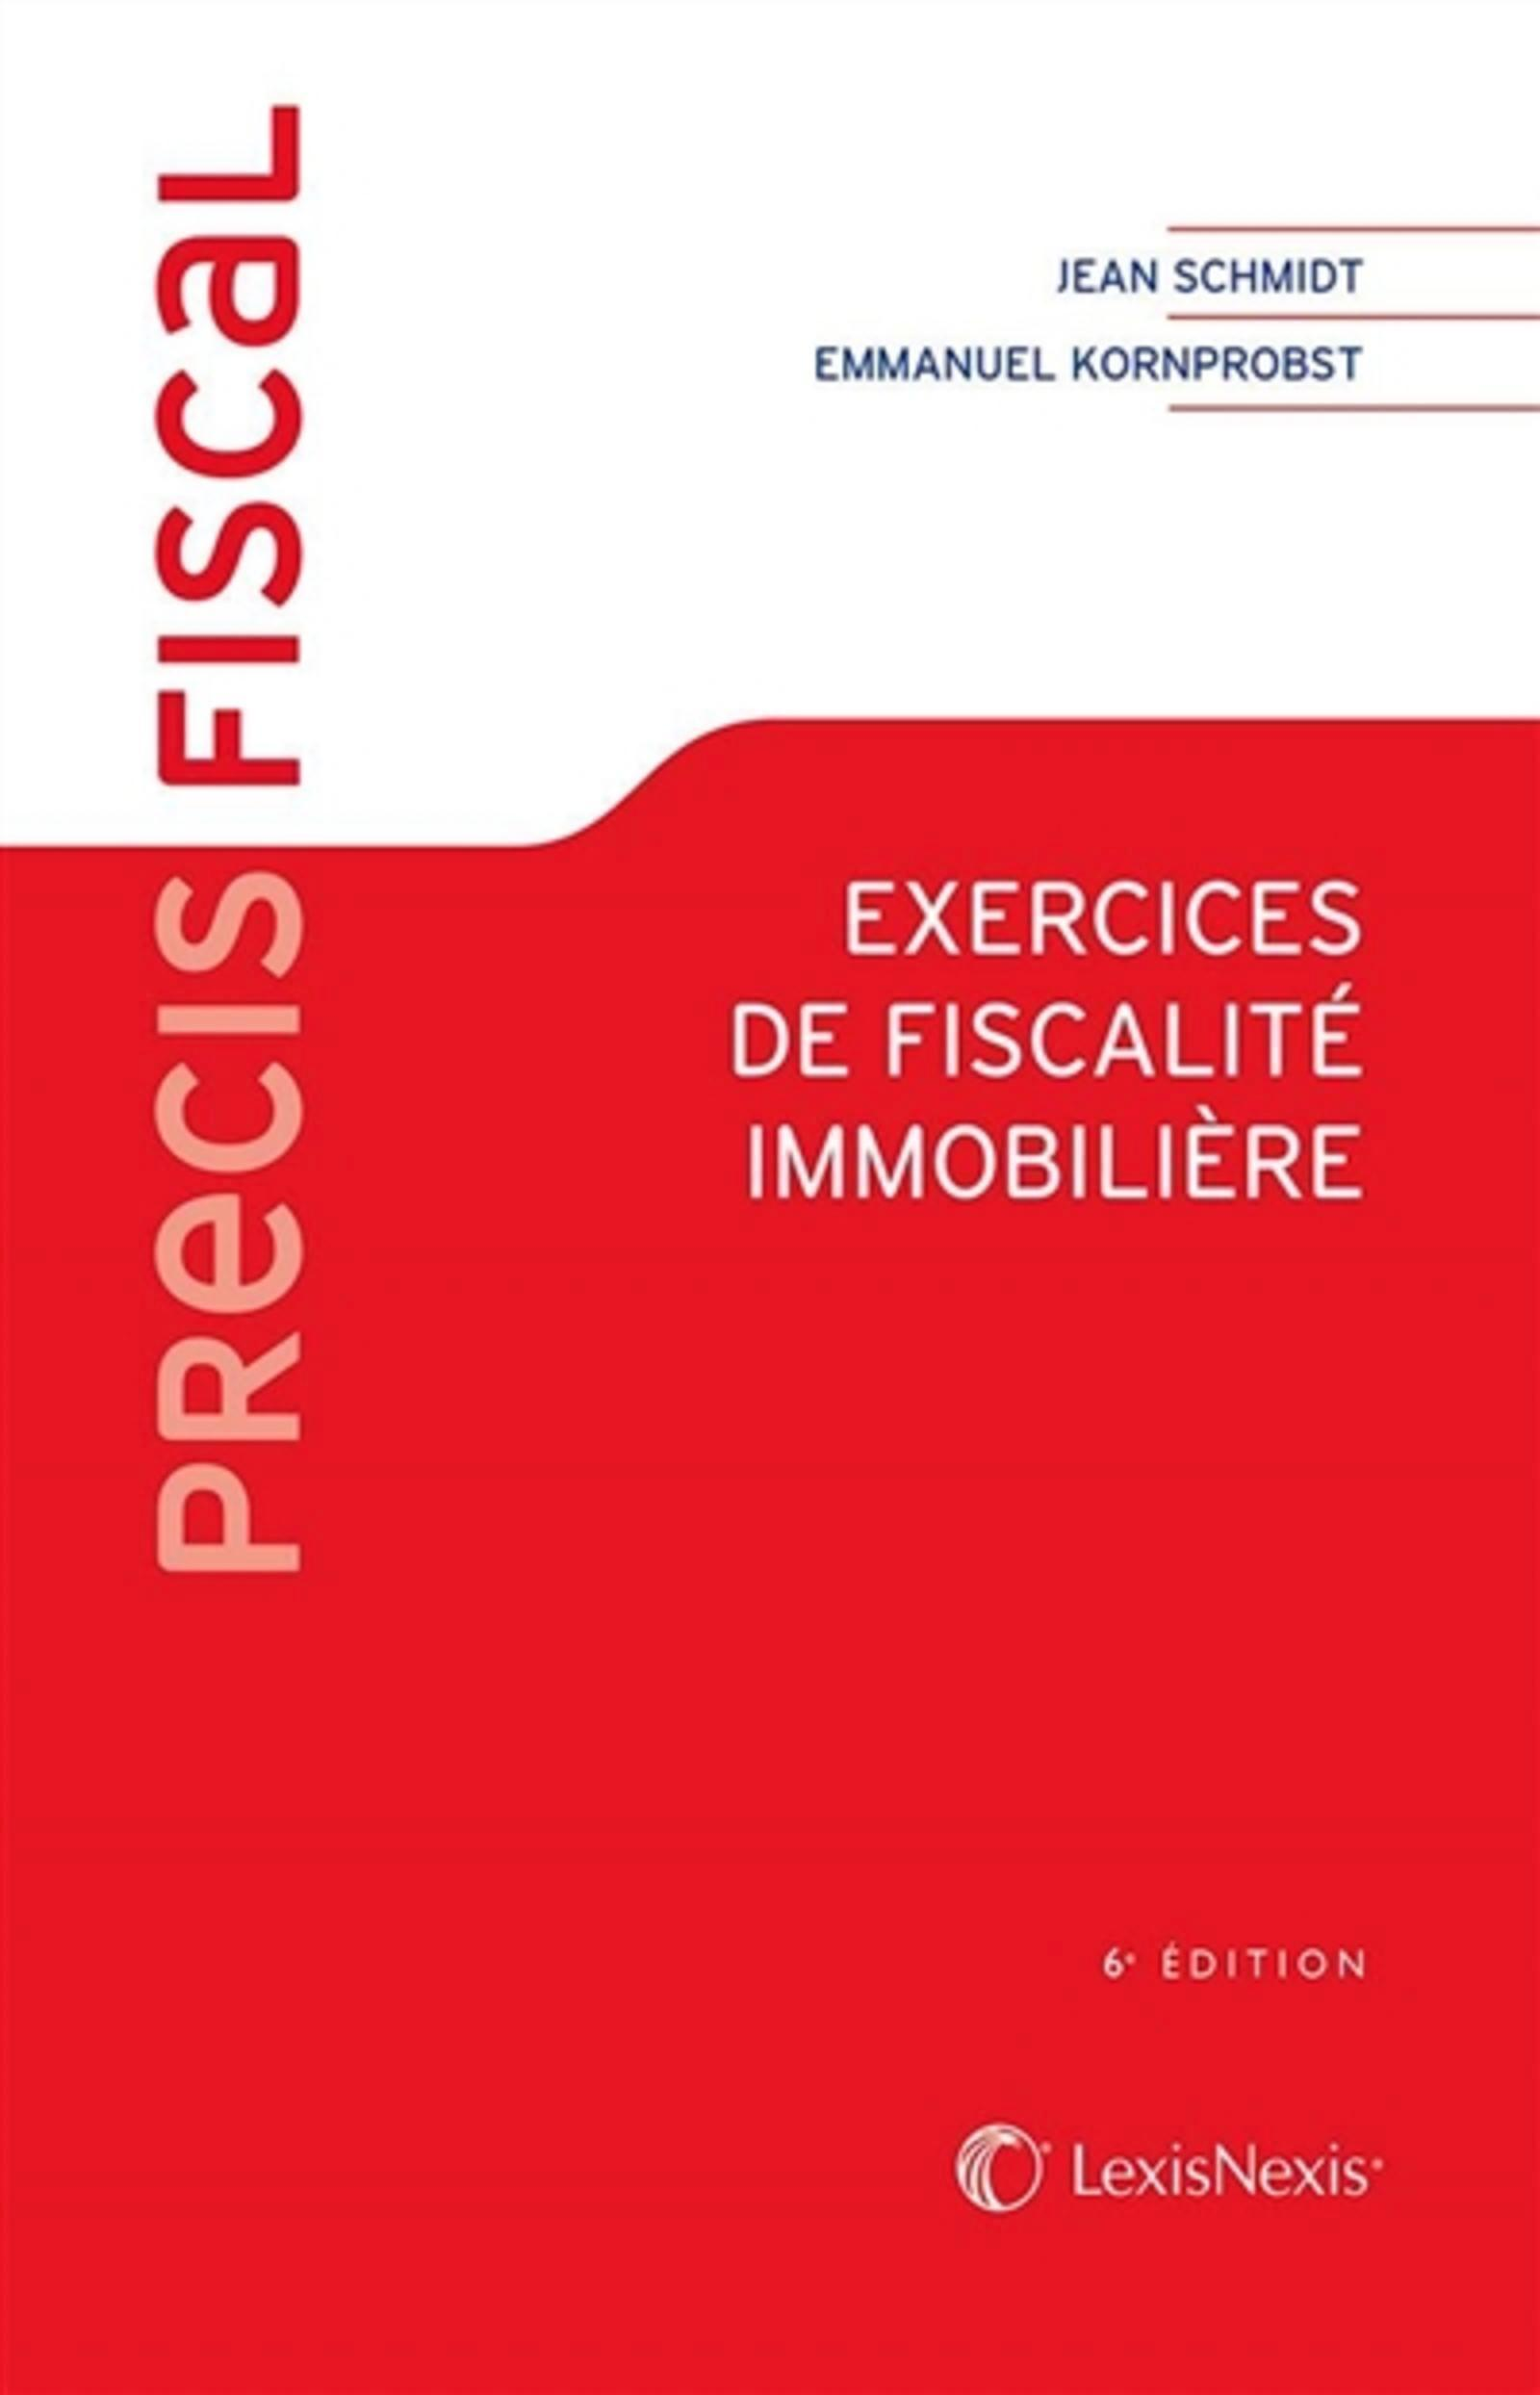 EXERCICES DE FISCALITE IMMOBILIERE